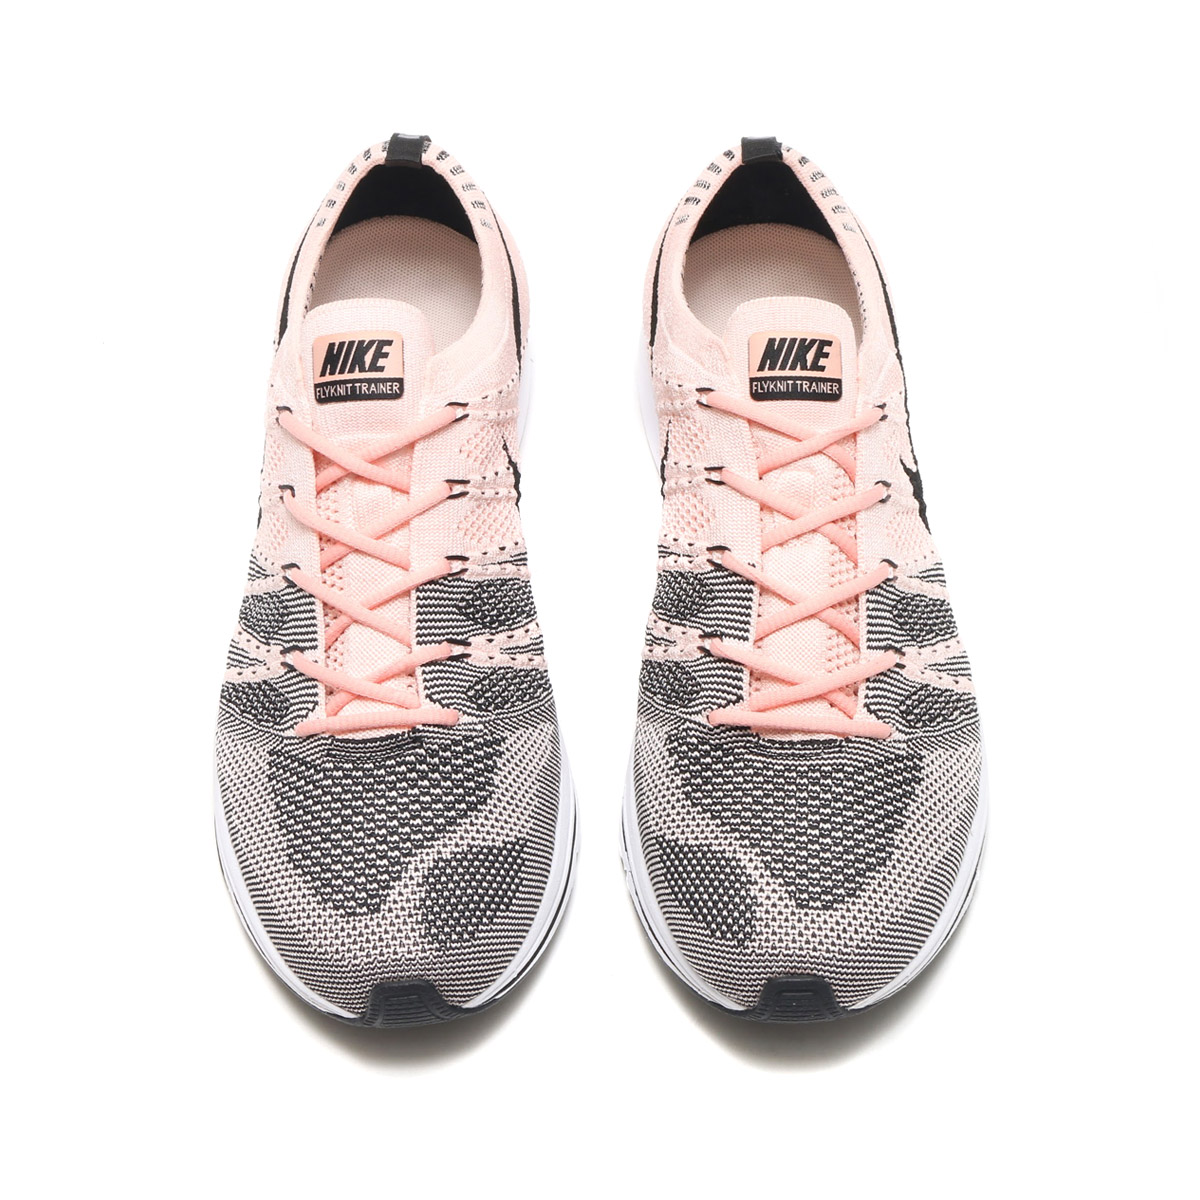 d496e3fe276a NIKE FLYKNIT TRAINER (Nike fried food knit trainer) (SUNSET  TINT BLACK-WHITE) 17FA-S